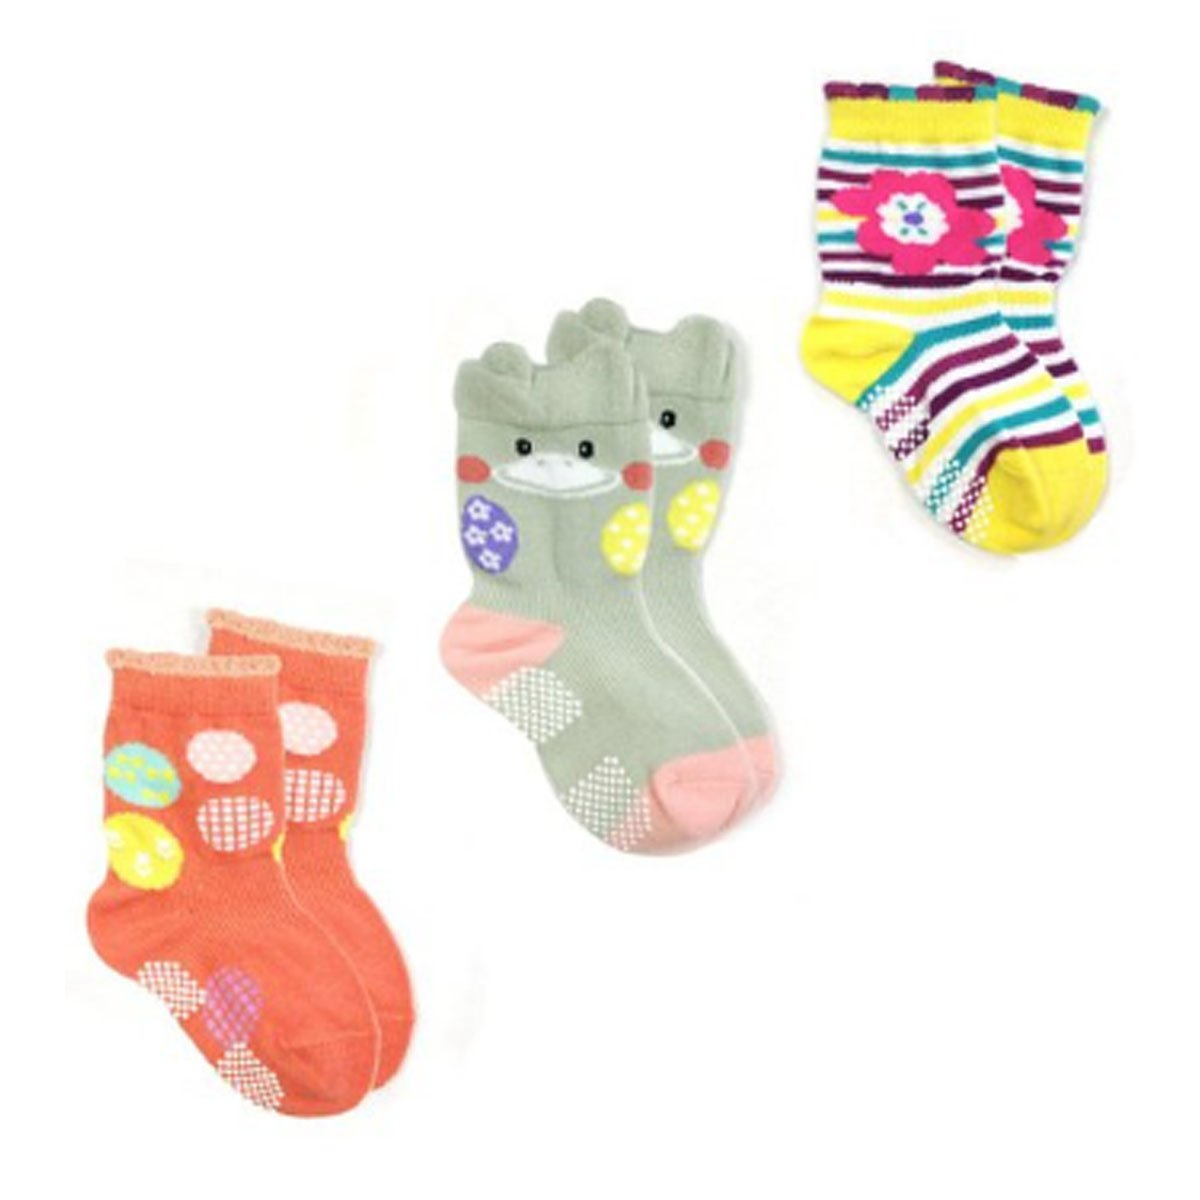 Wrapables Animal Non-Skid Toddler Socks Set of 3 Duck Small